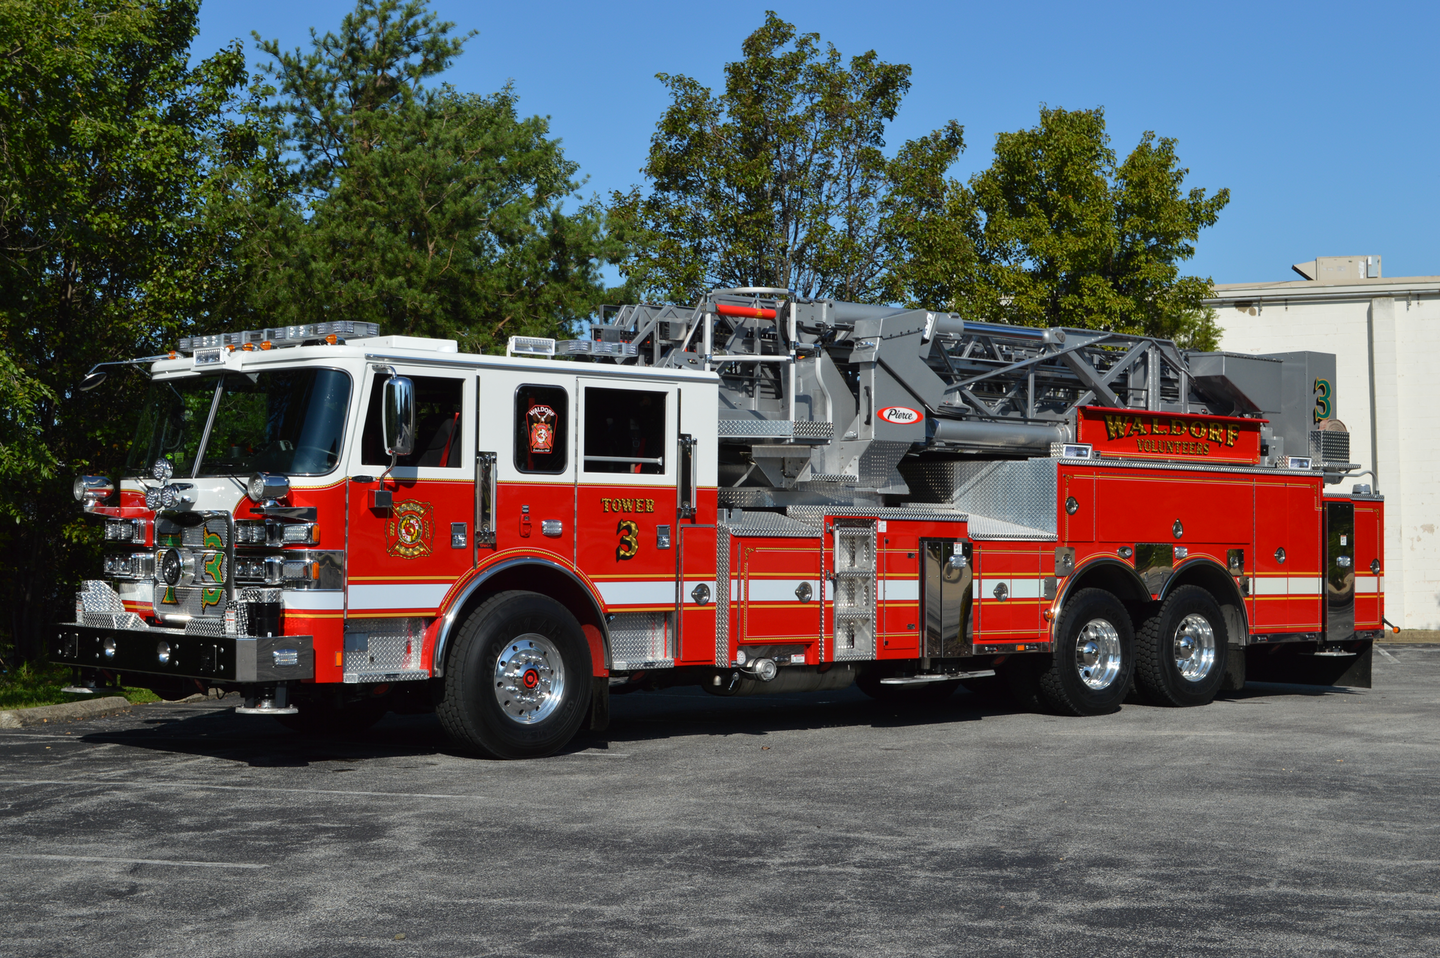 The Waldorf, MD, Fire Department's 2020 Pierce Arrow XT 100-foot, midmount tower ladder is equipped with multiple ground ladders and a full complement of truck company tools. The transverse forward body compartment makes good utilization of space that would be occupied by the fire pump on a quint device. It accommodates a stokes basket and long tool storage.